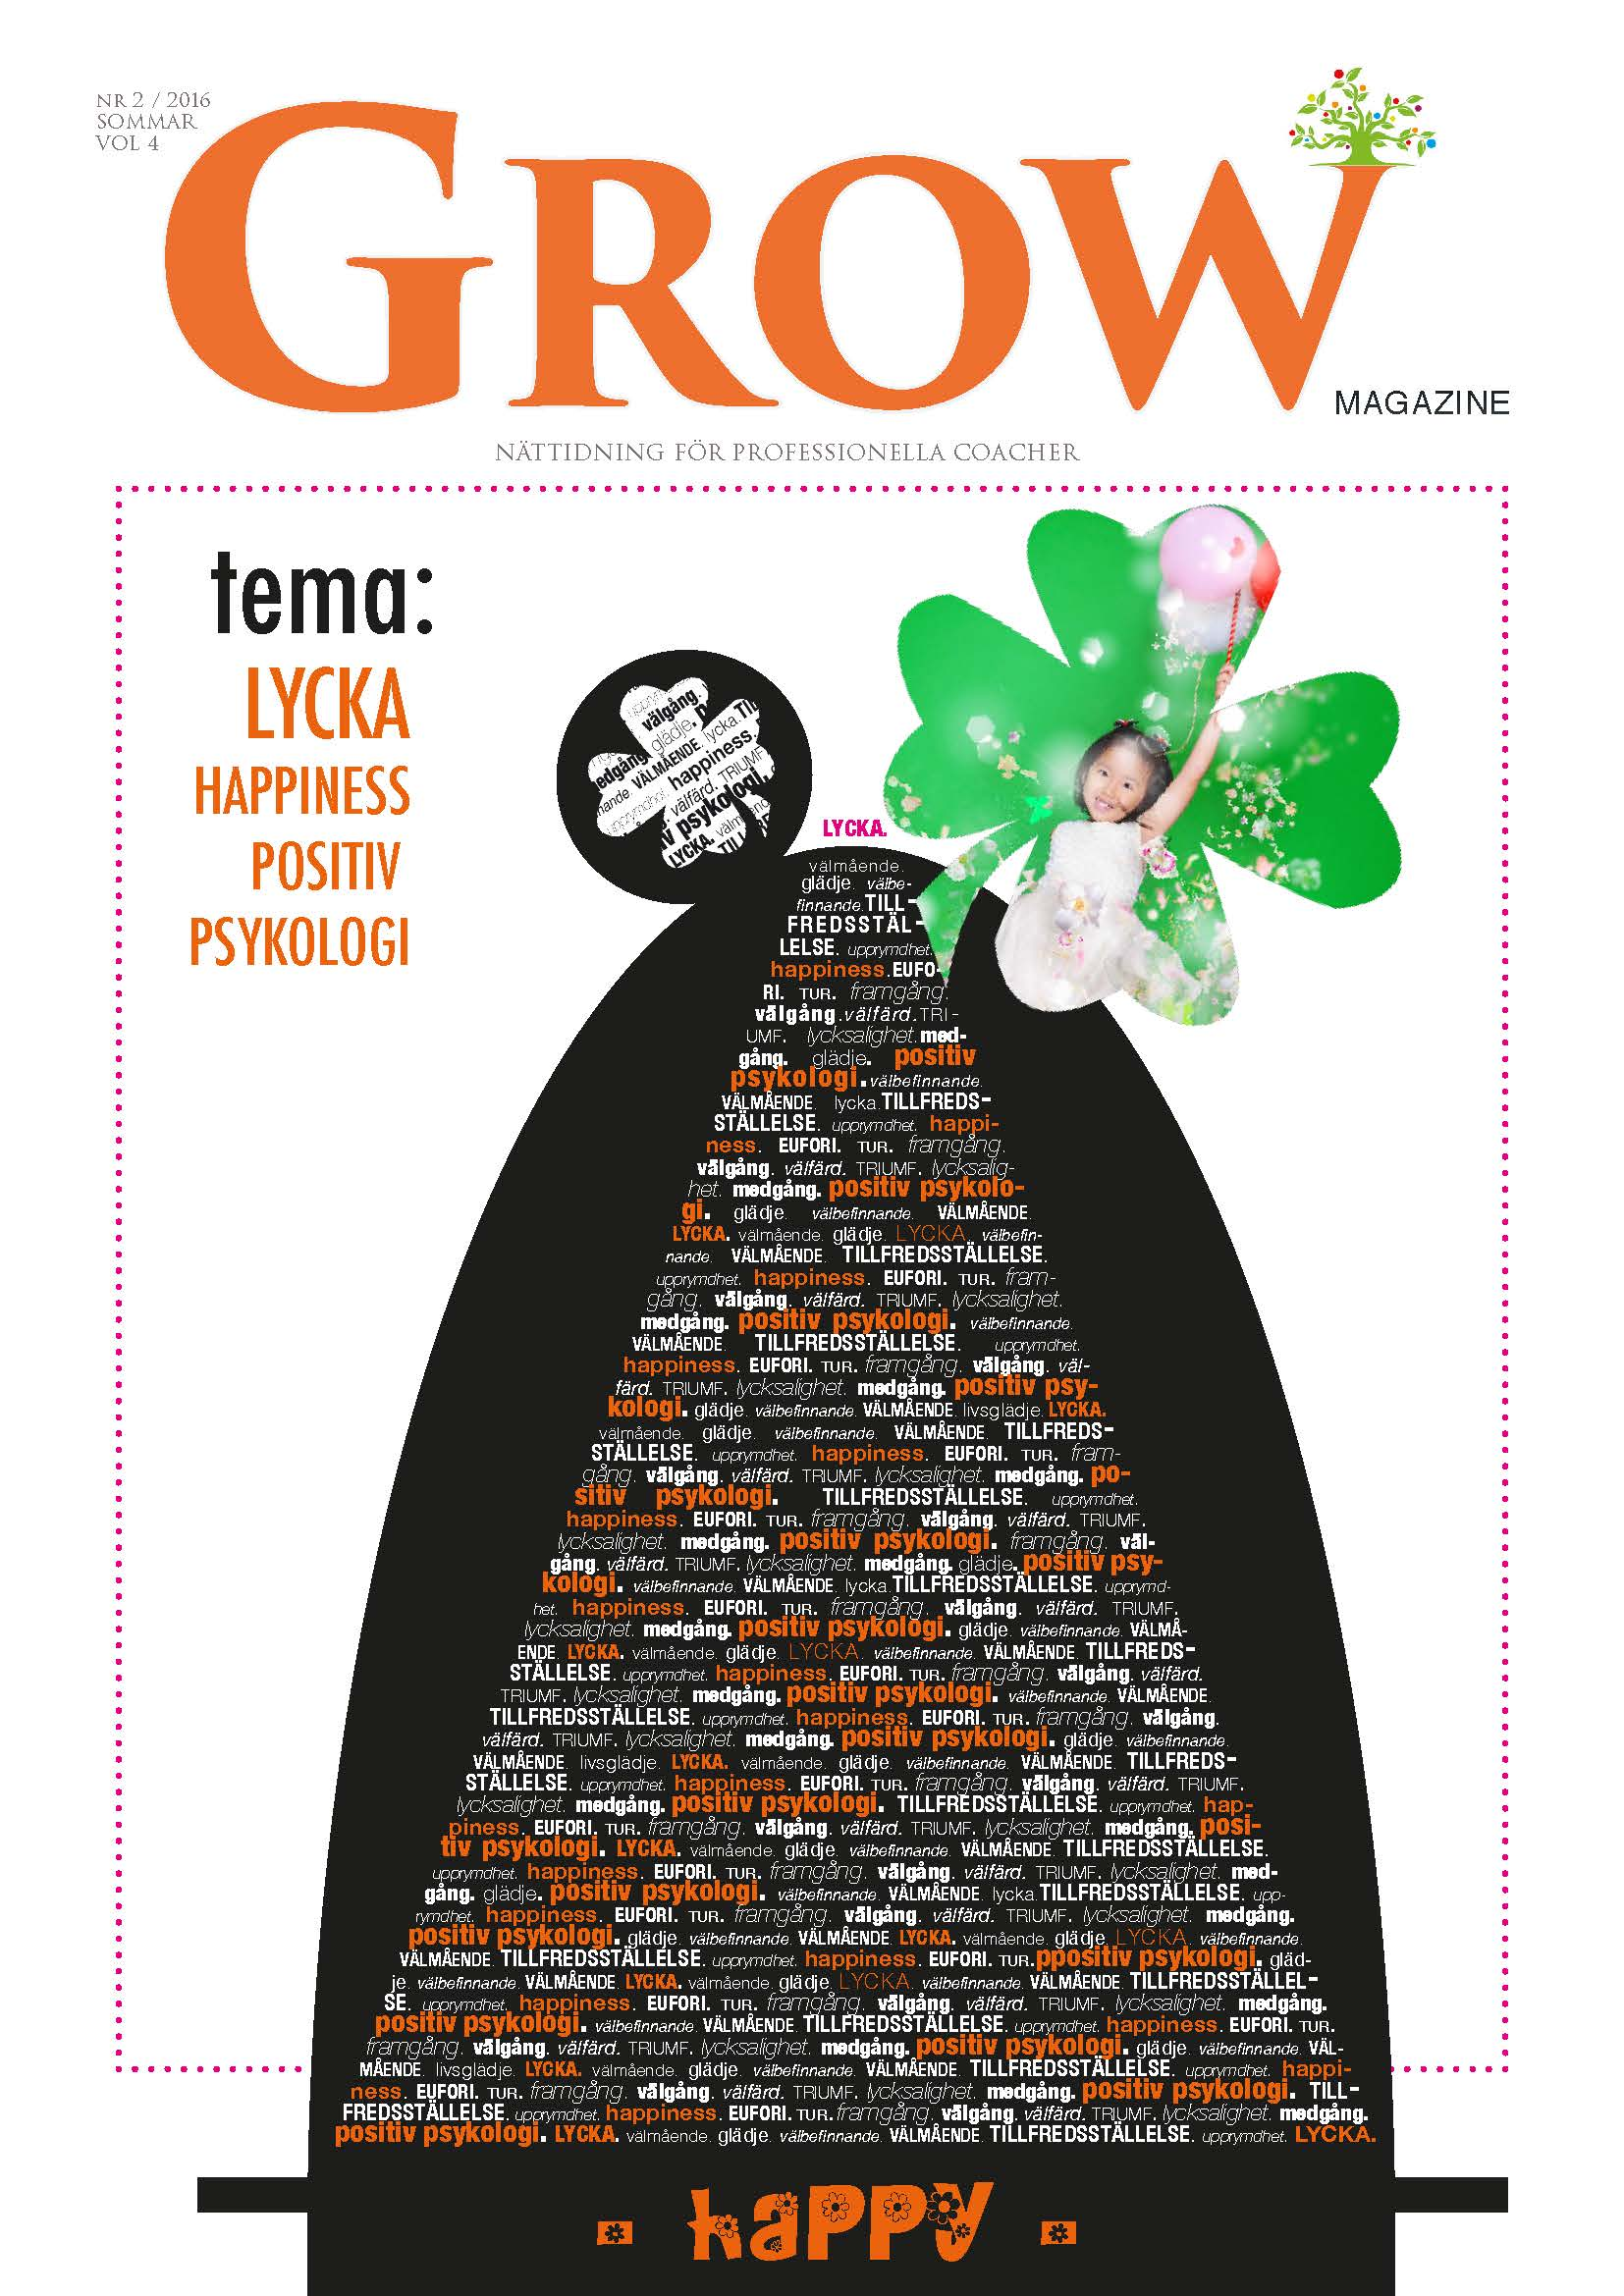 Omslag GROW magazine vol 4 Tema: Lycka, Happiness & Positiv Psykologi